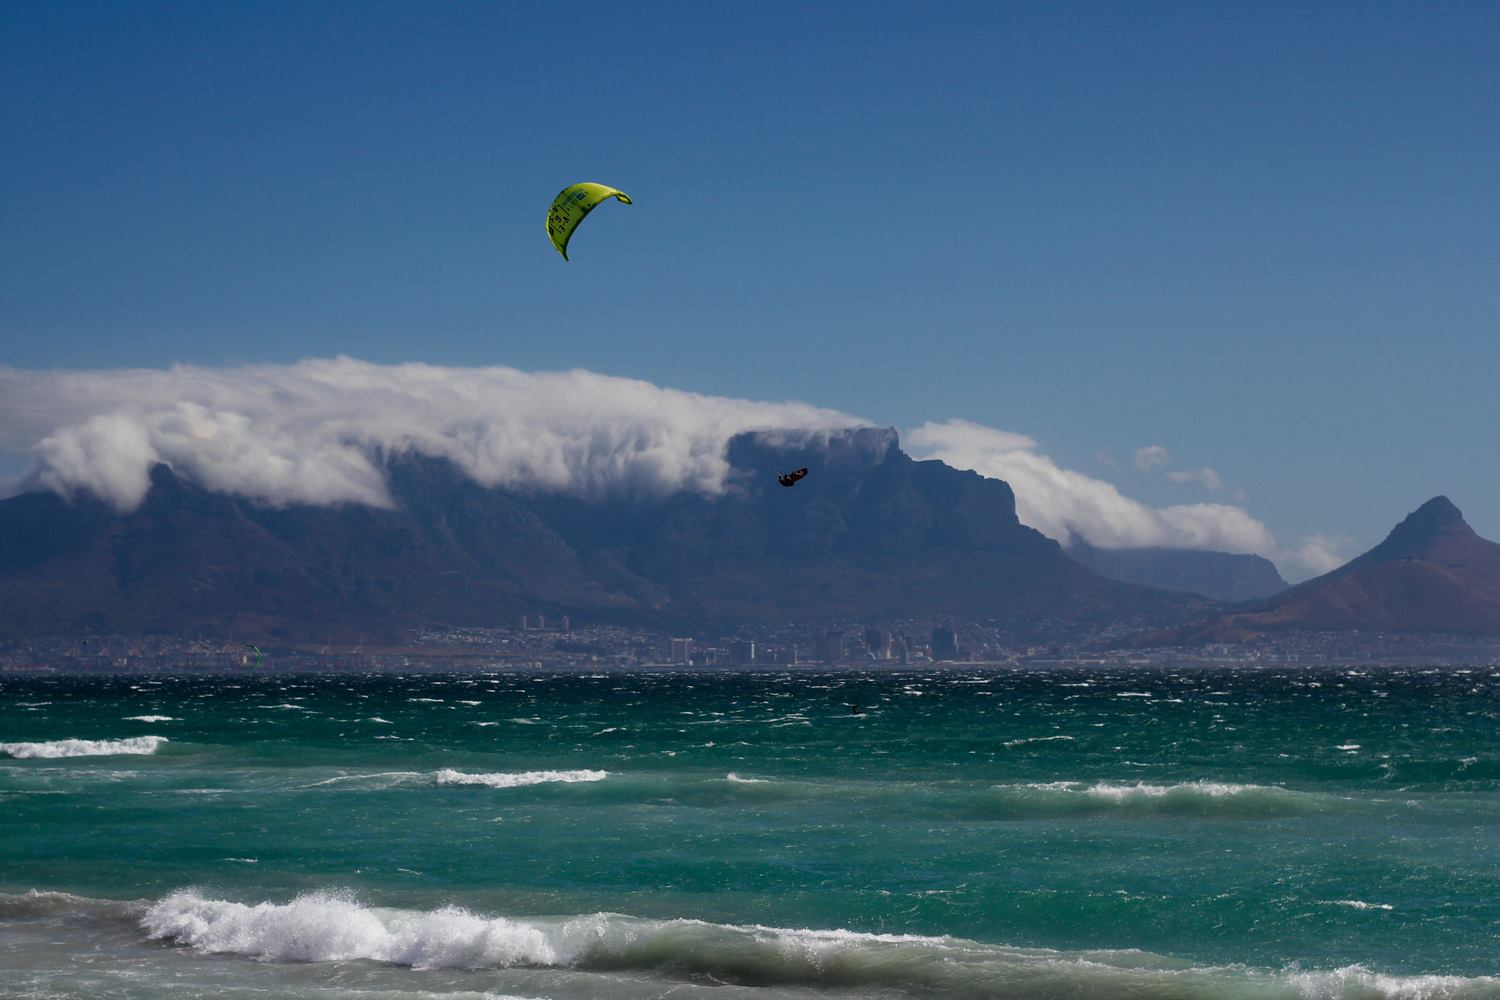 Kitesurf kiteboarding kitesurfing kiteboard women kitesurfer sport photo of the day image images photography Lewis-Crathern-universkite